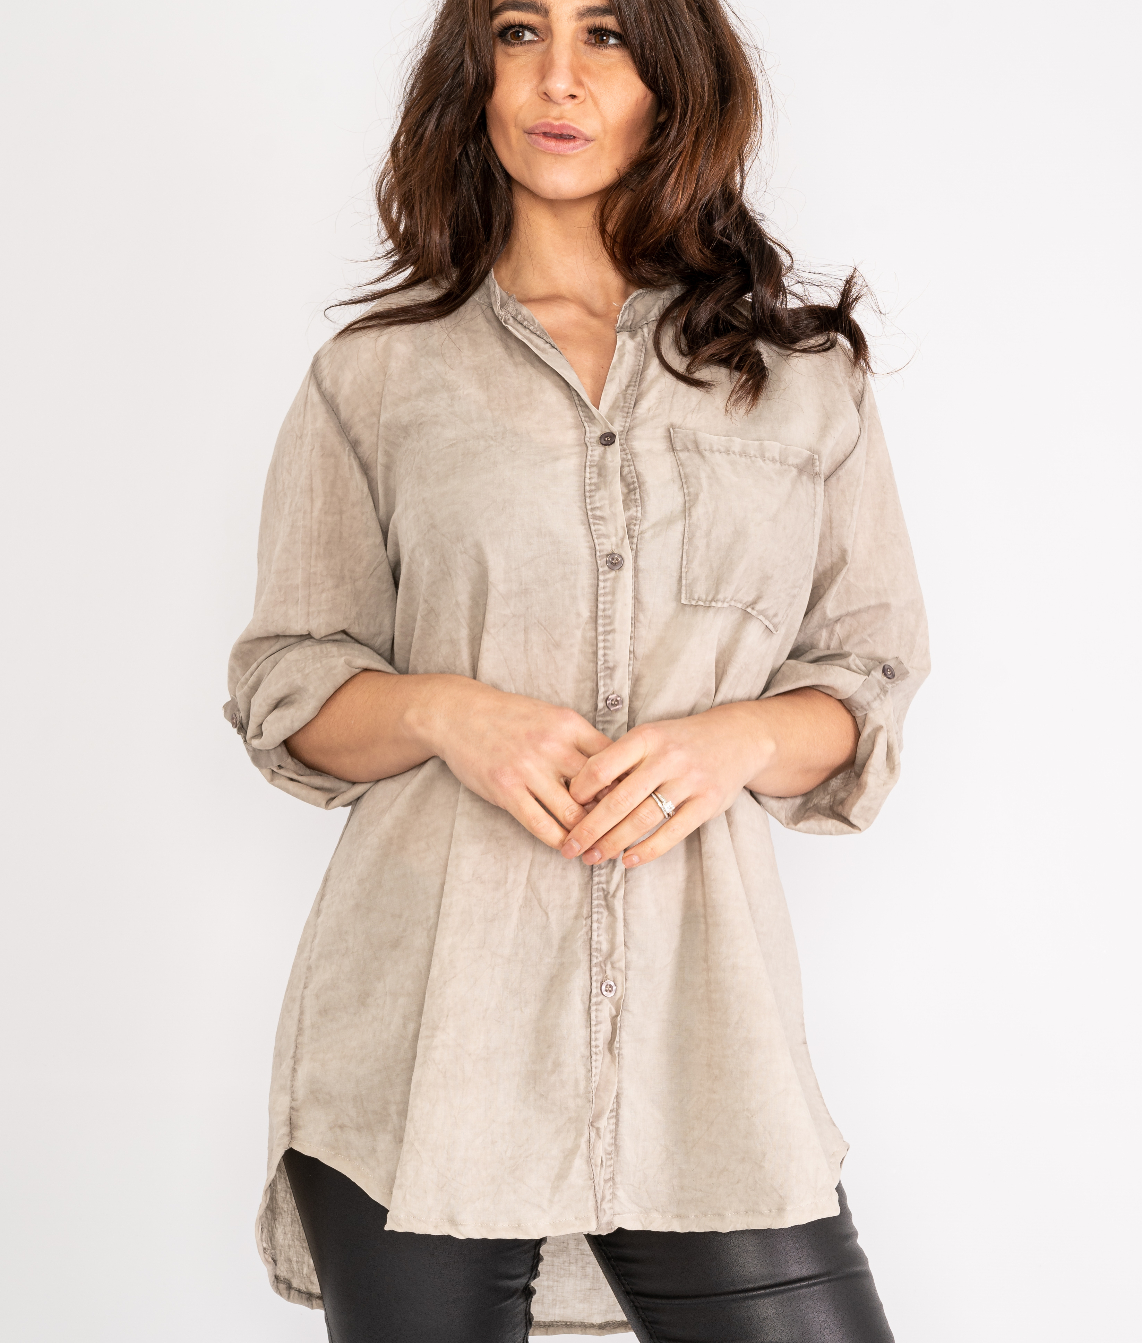 Button up blouse Lucy Sparks